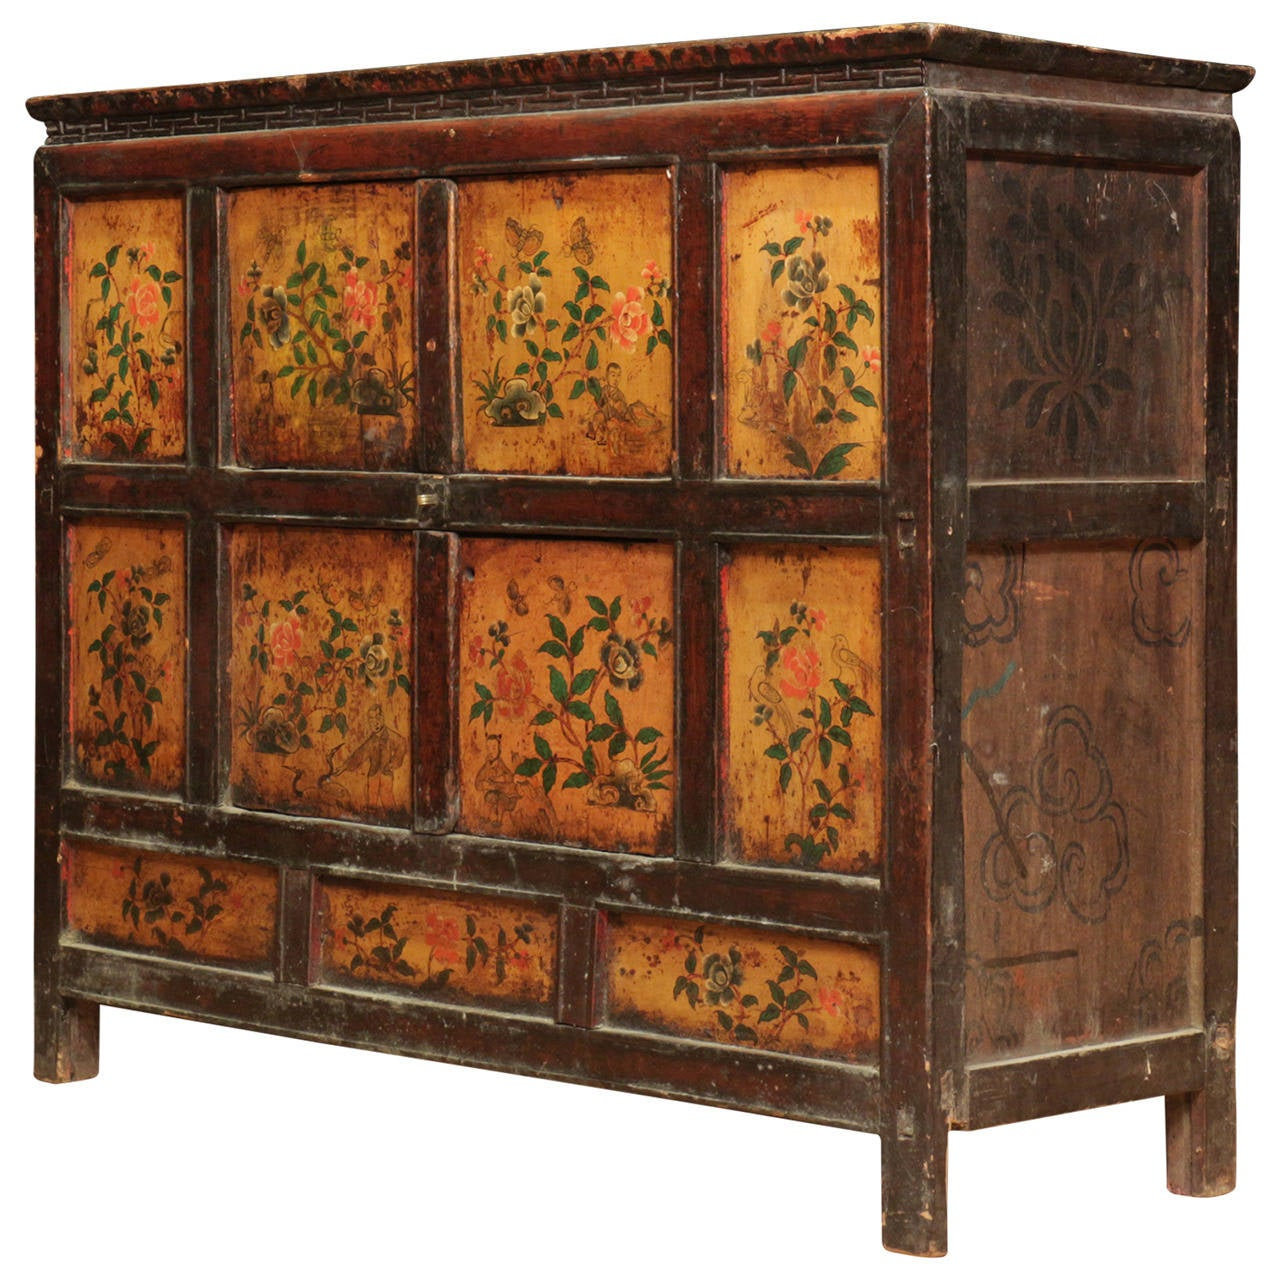 Antique tibetan cabinet in the lhasa style at 1stdibs for Antique chinese furniture styles